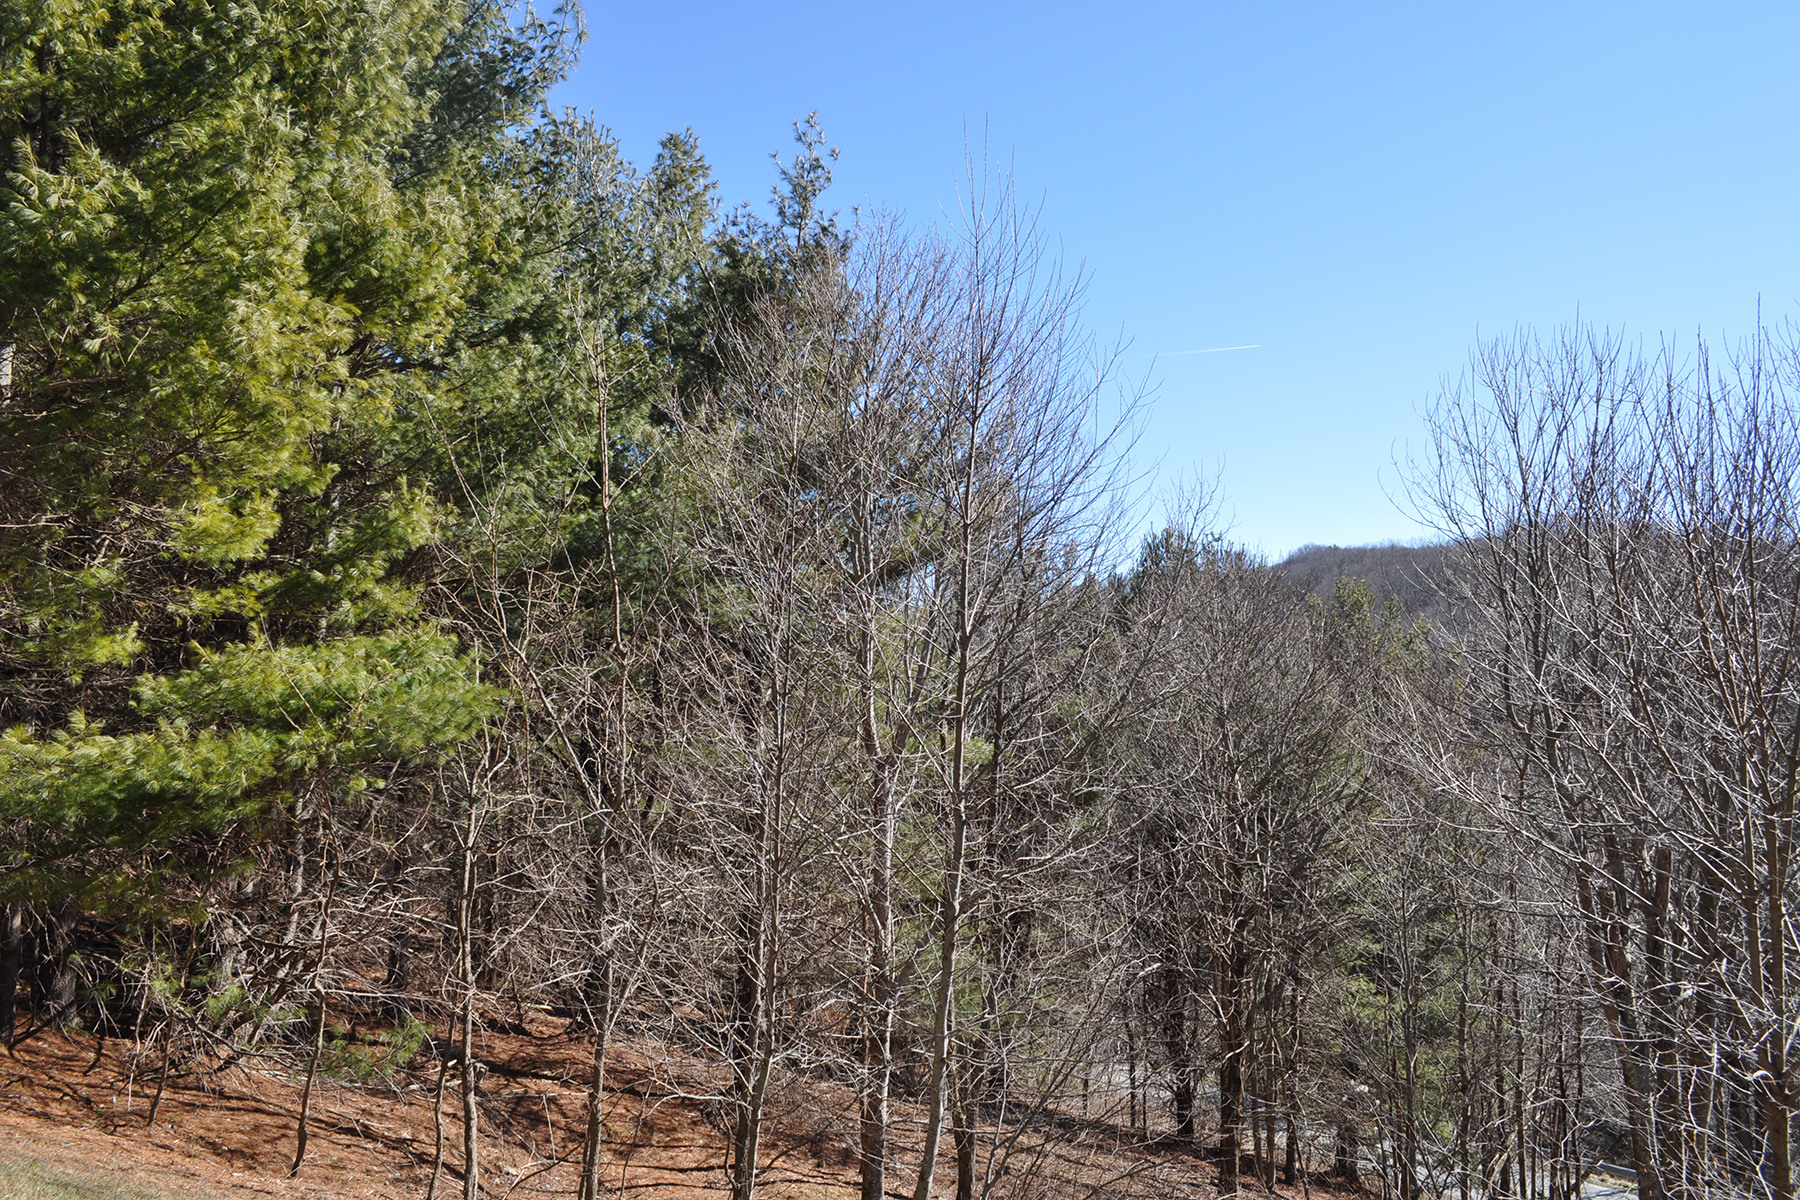 Land for Sale at BLOWING ROCK - SORRENTO SKIES Tba Picasso Dr Blowing Rock, North Carolina 28605 United States